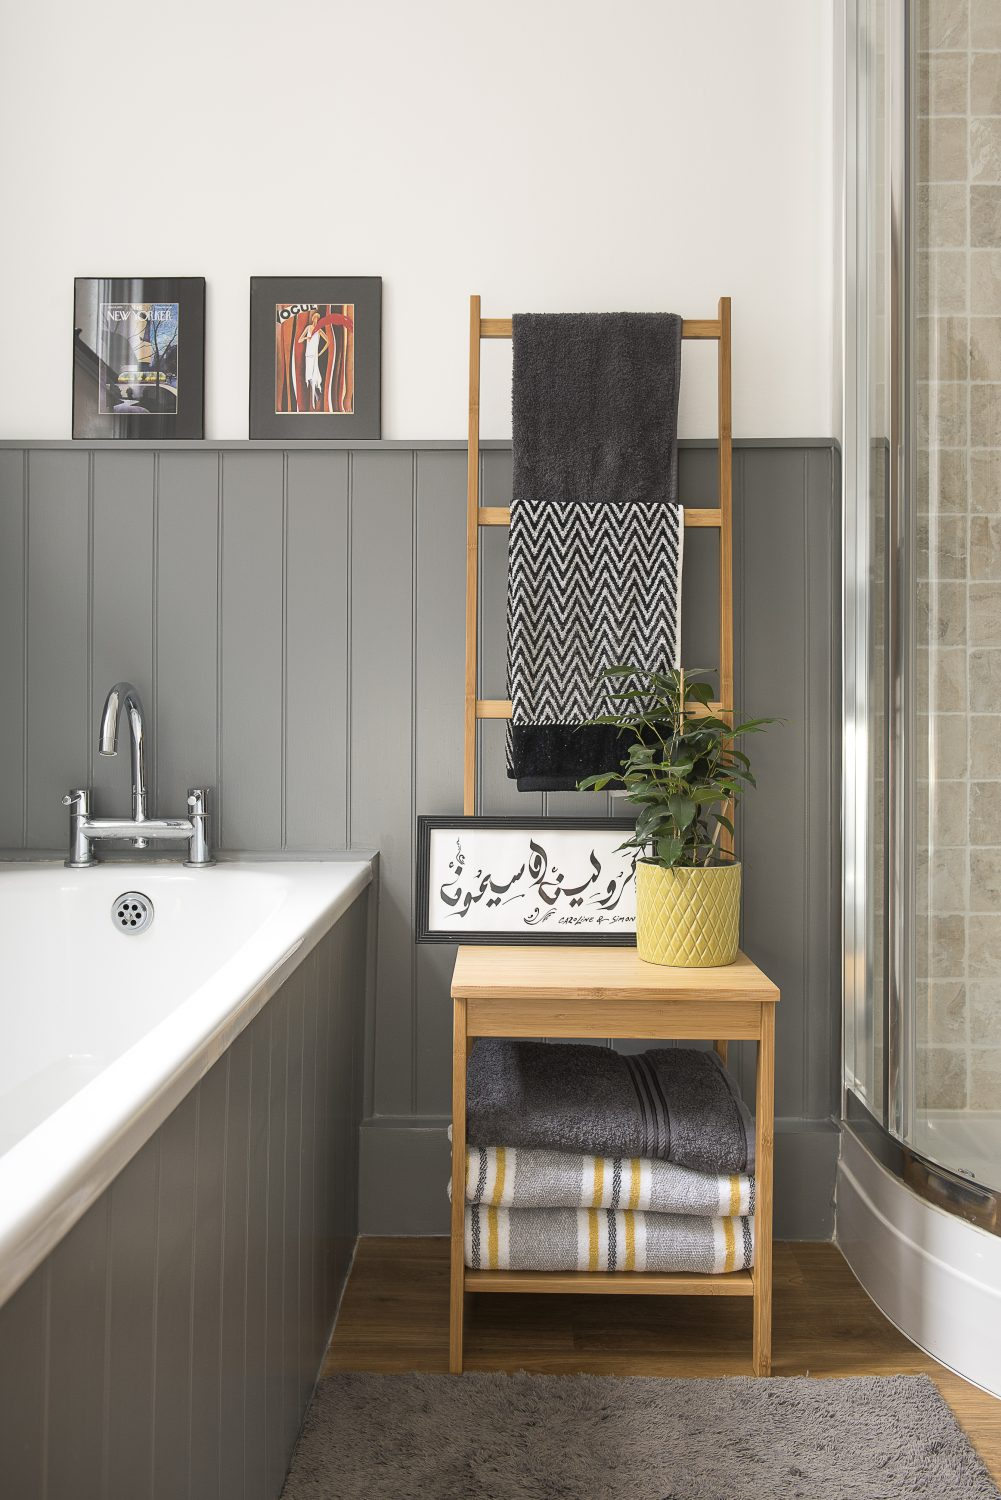 Along the corridor, the family bathroom is a tranquil haven of greys peppered with yellows and whites